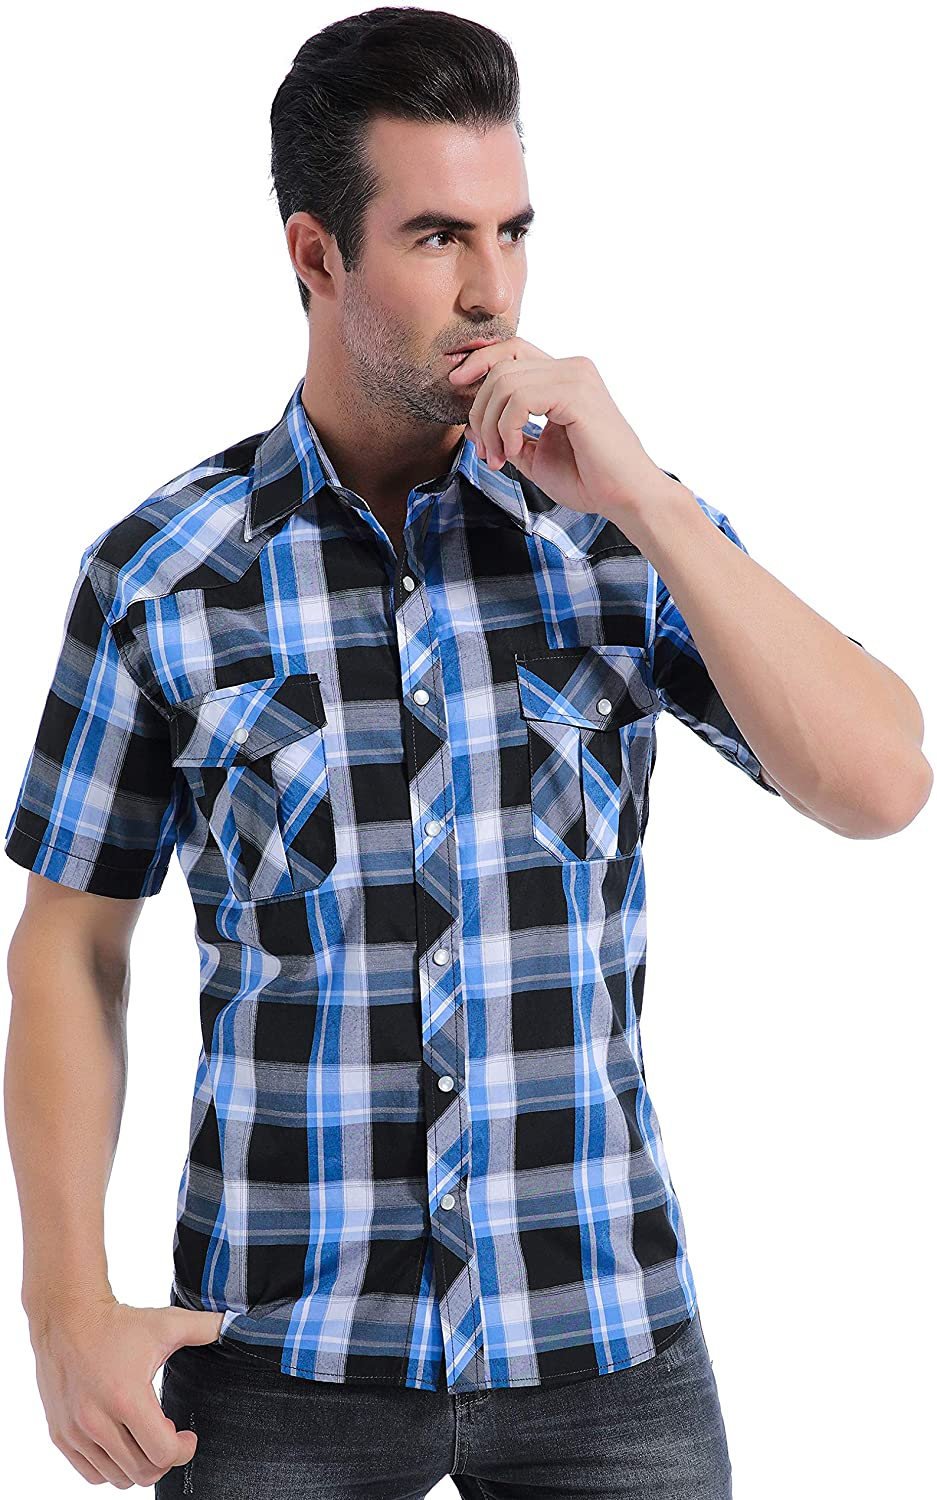 Coevals Club Men's Casual Plaid Pearl Snap Button Front Short Sleeve Shirt Regular Fit